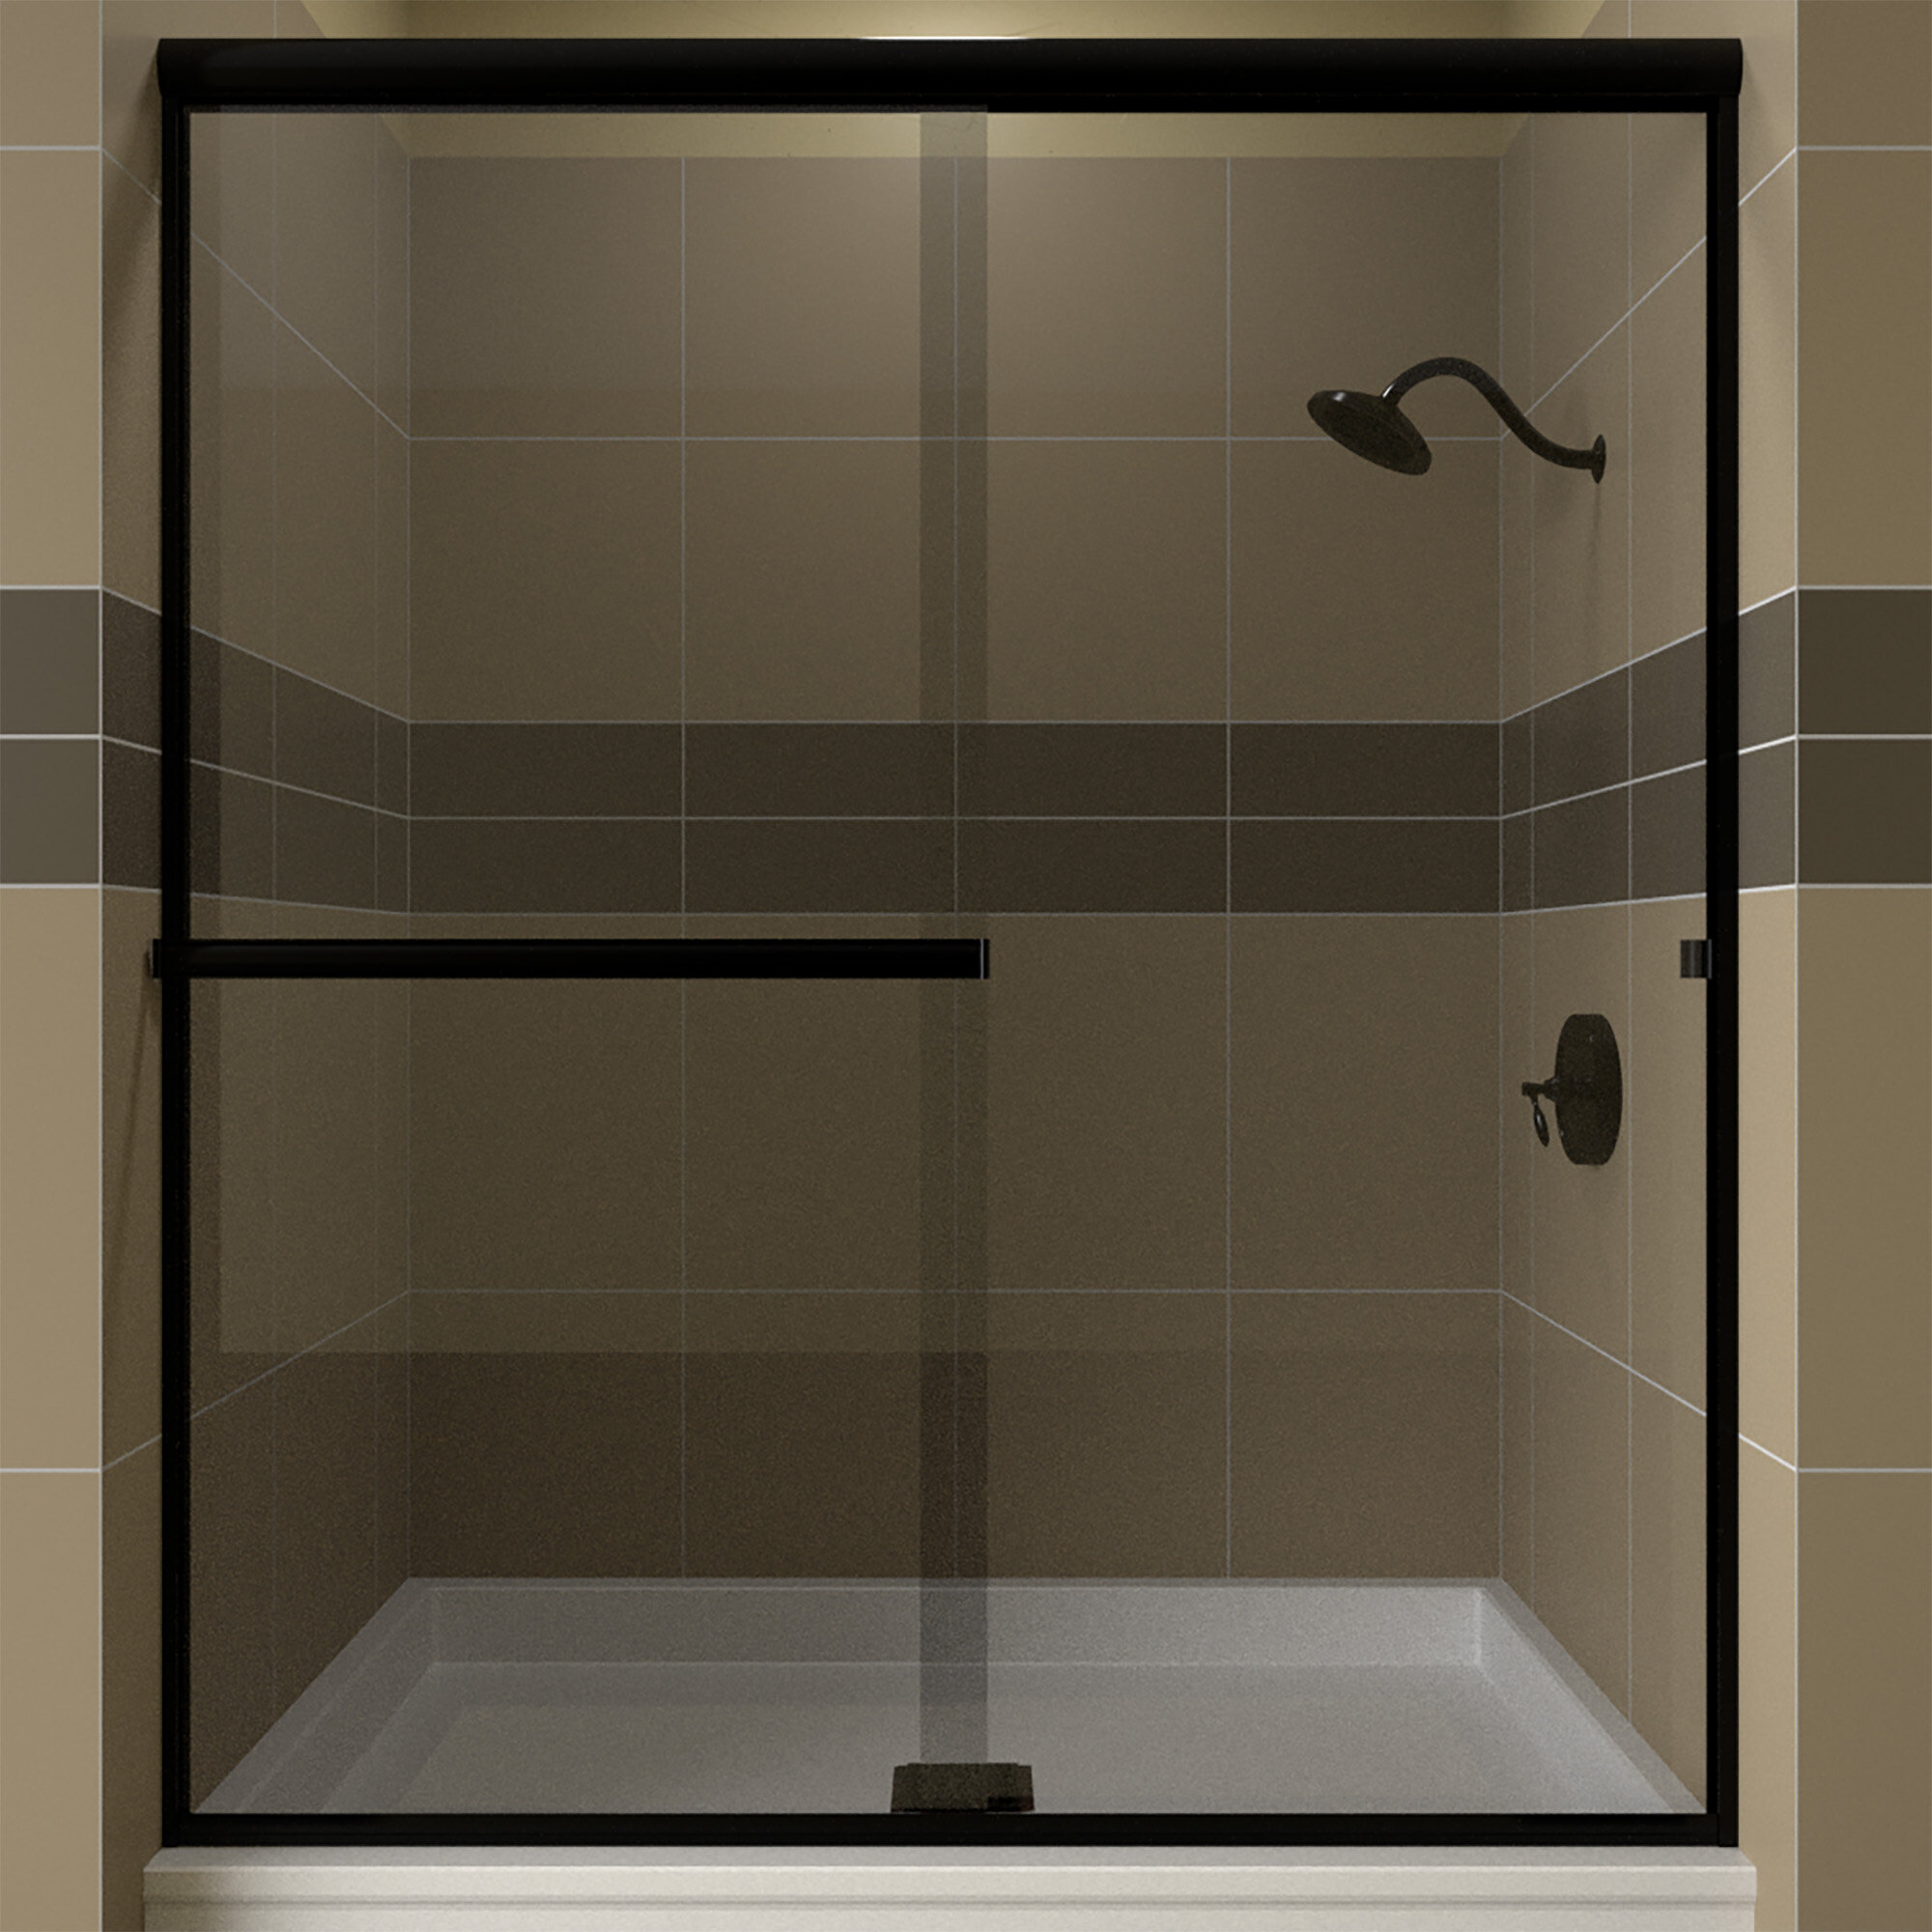 Details About Lese 60 X 70 38 Bypass Semi Frameless Shower Door Clear Glass Matte Black